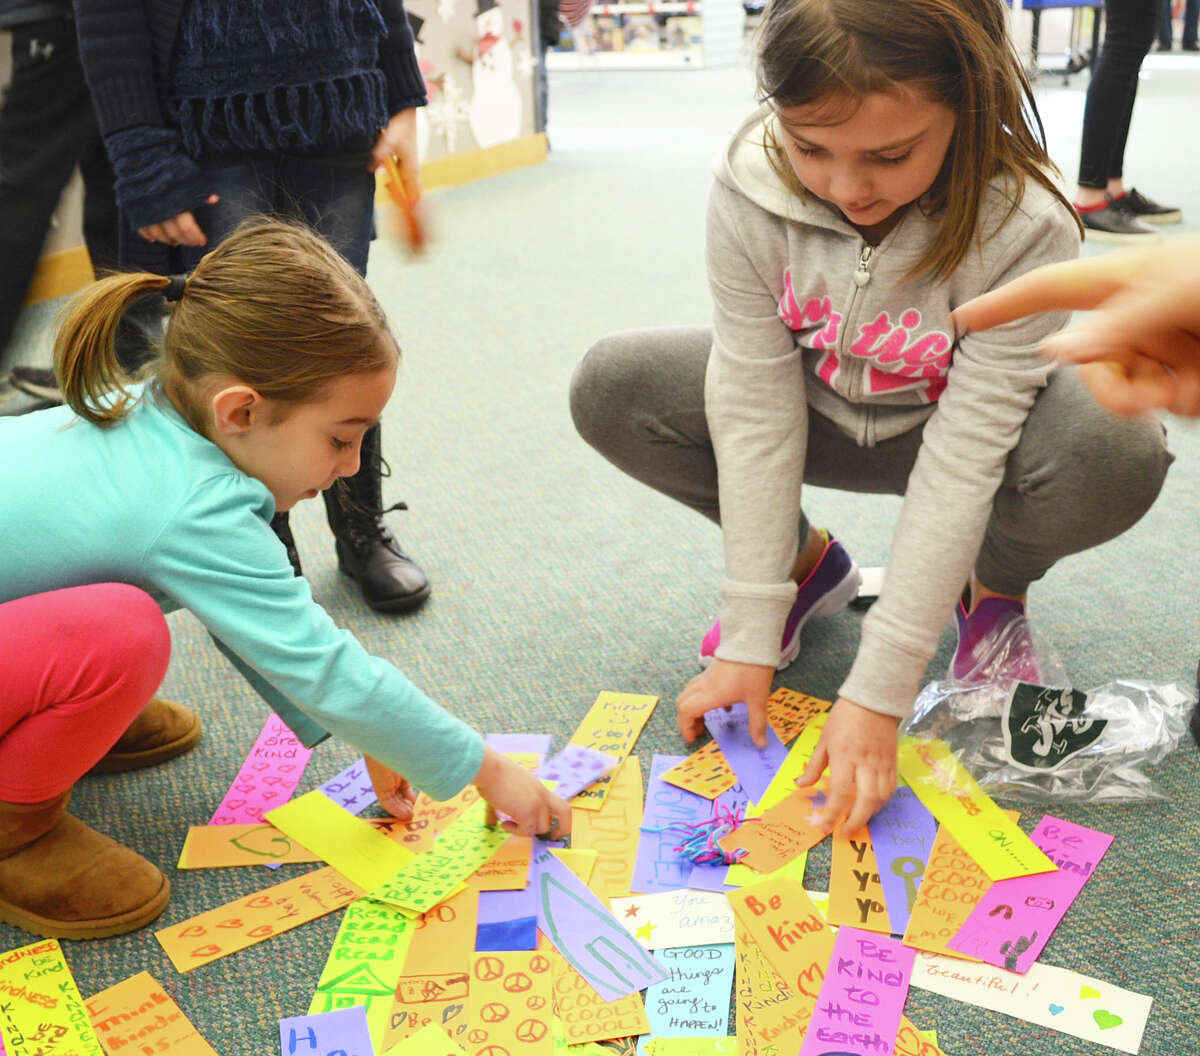 Grace Mollica, 7, left, and Lauren LaRose, 9, collect bookmarks at Fairfield Woods Branch Library to be placed in books to surprise readers with messages promoting acts of kindness.